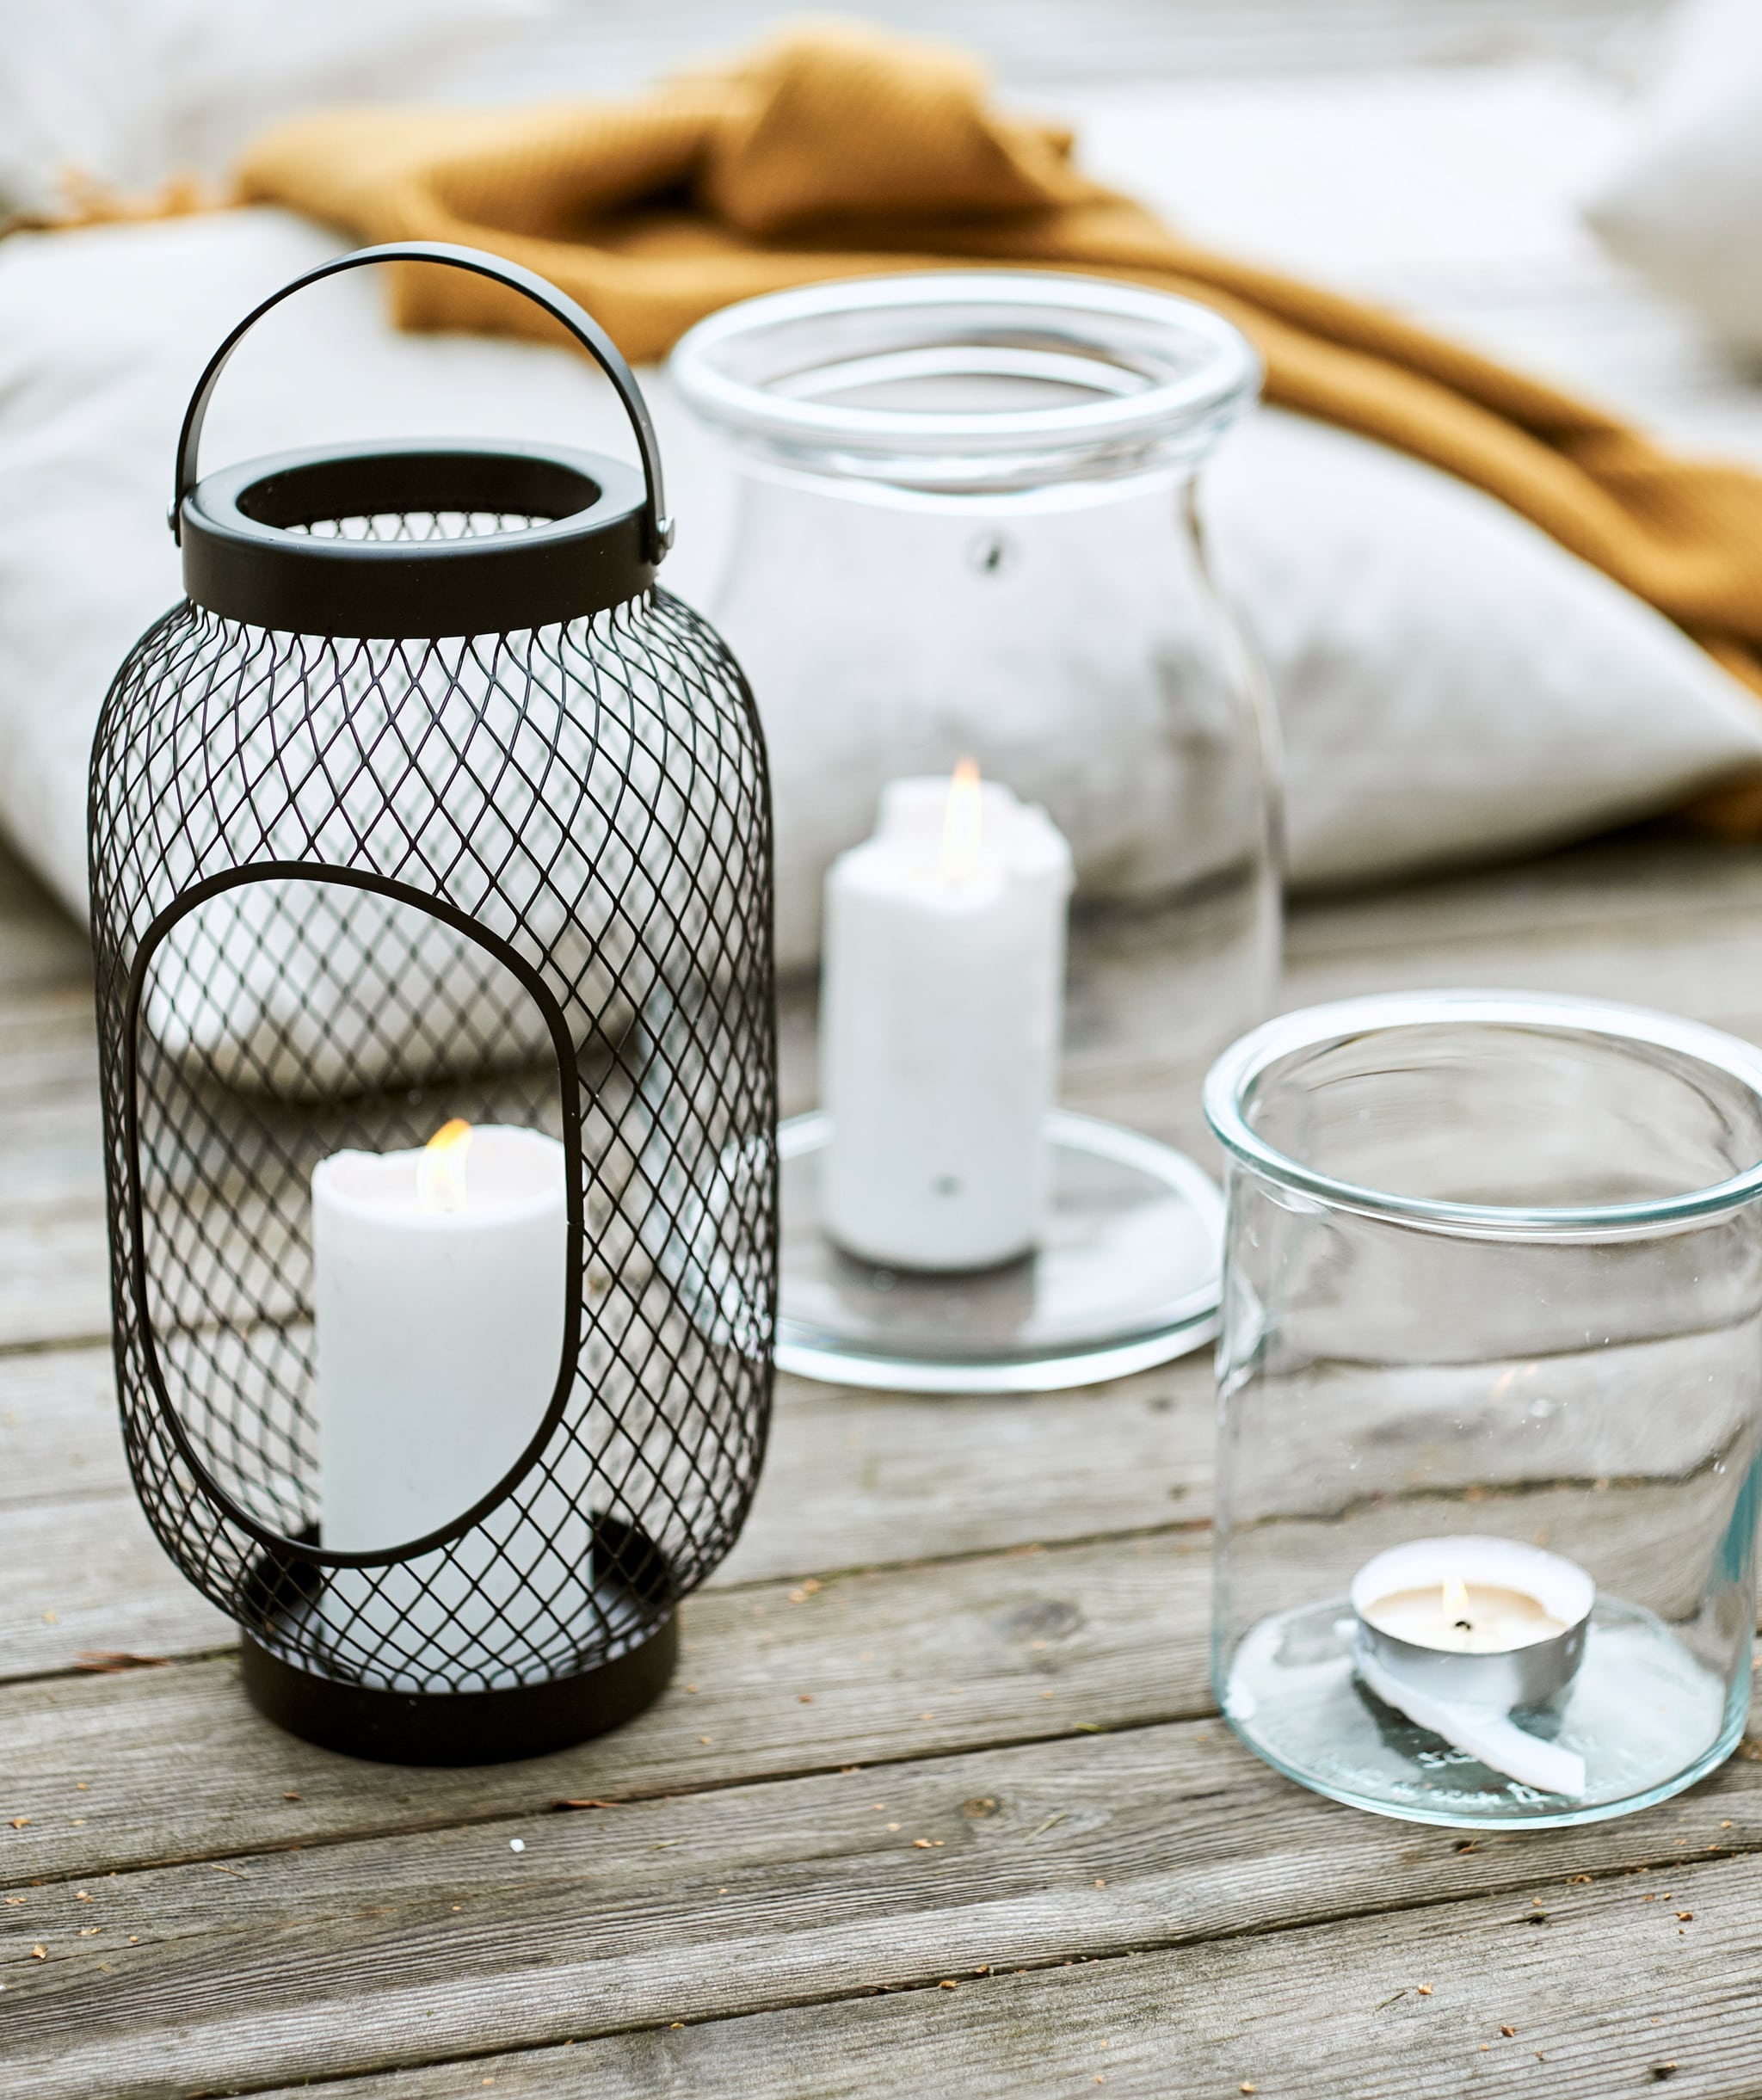 Black mesh wire lantern with block candle beside two glass jars with candles, next to a cushion and yellow throw on decking.